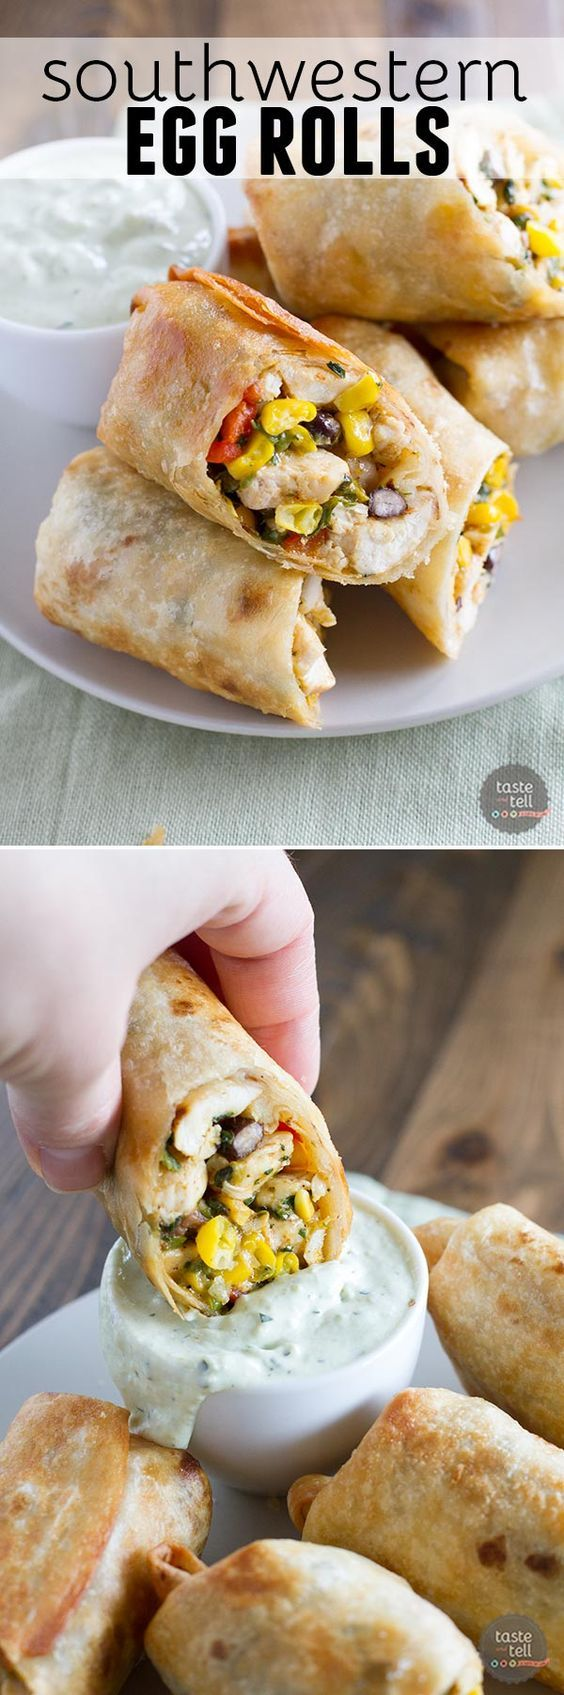 Southwestern egg rolls, Avocado ranch and Egg rolls on Pinterest